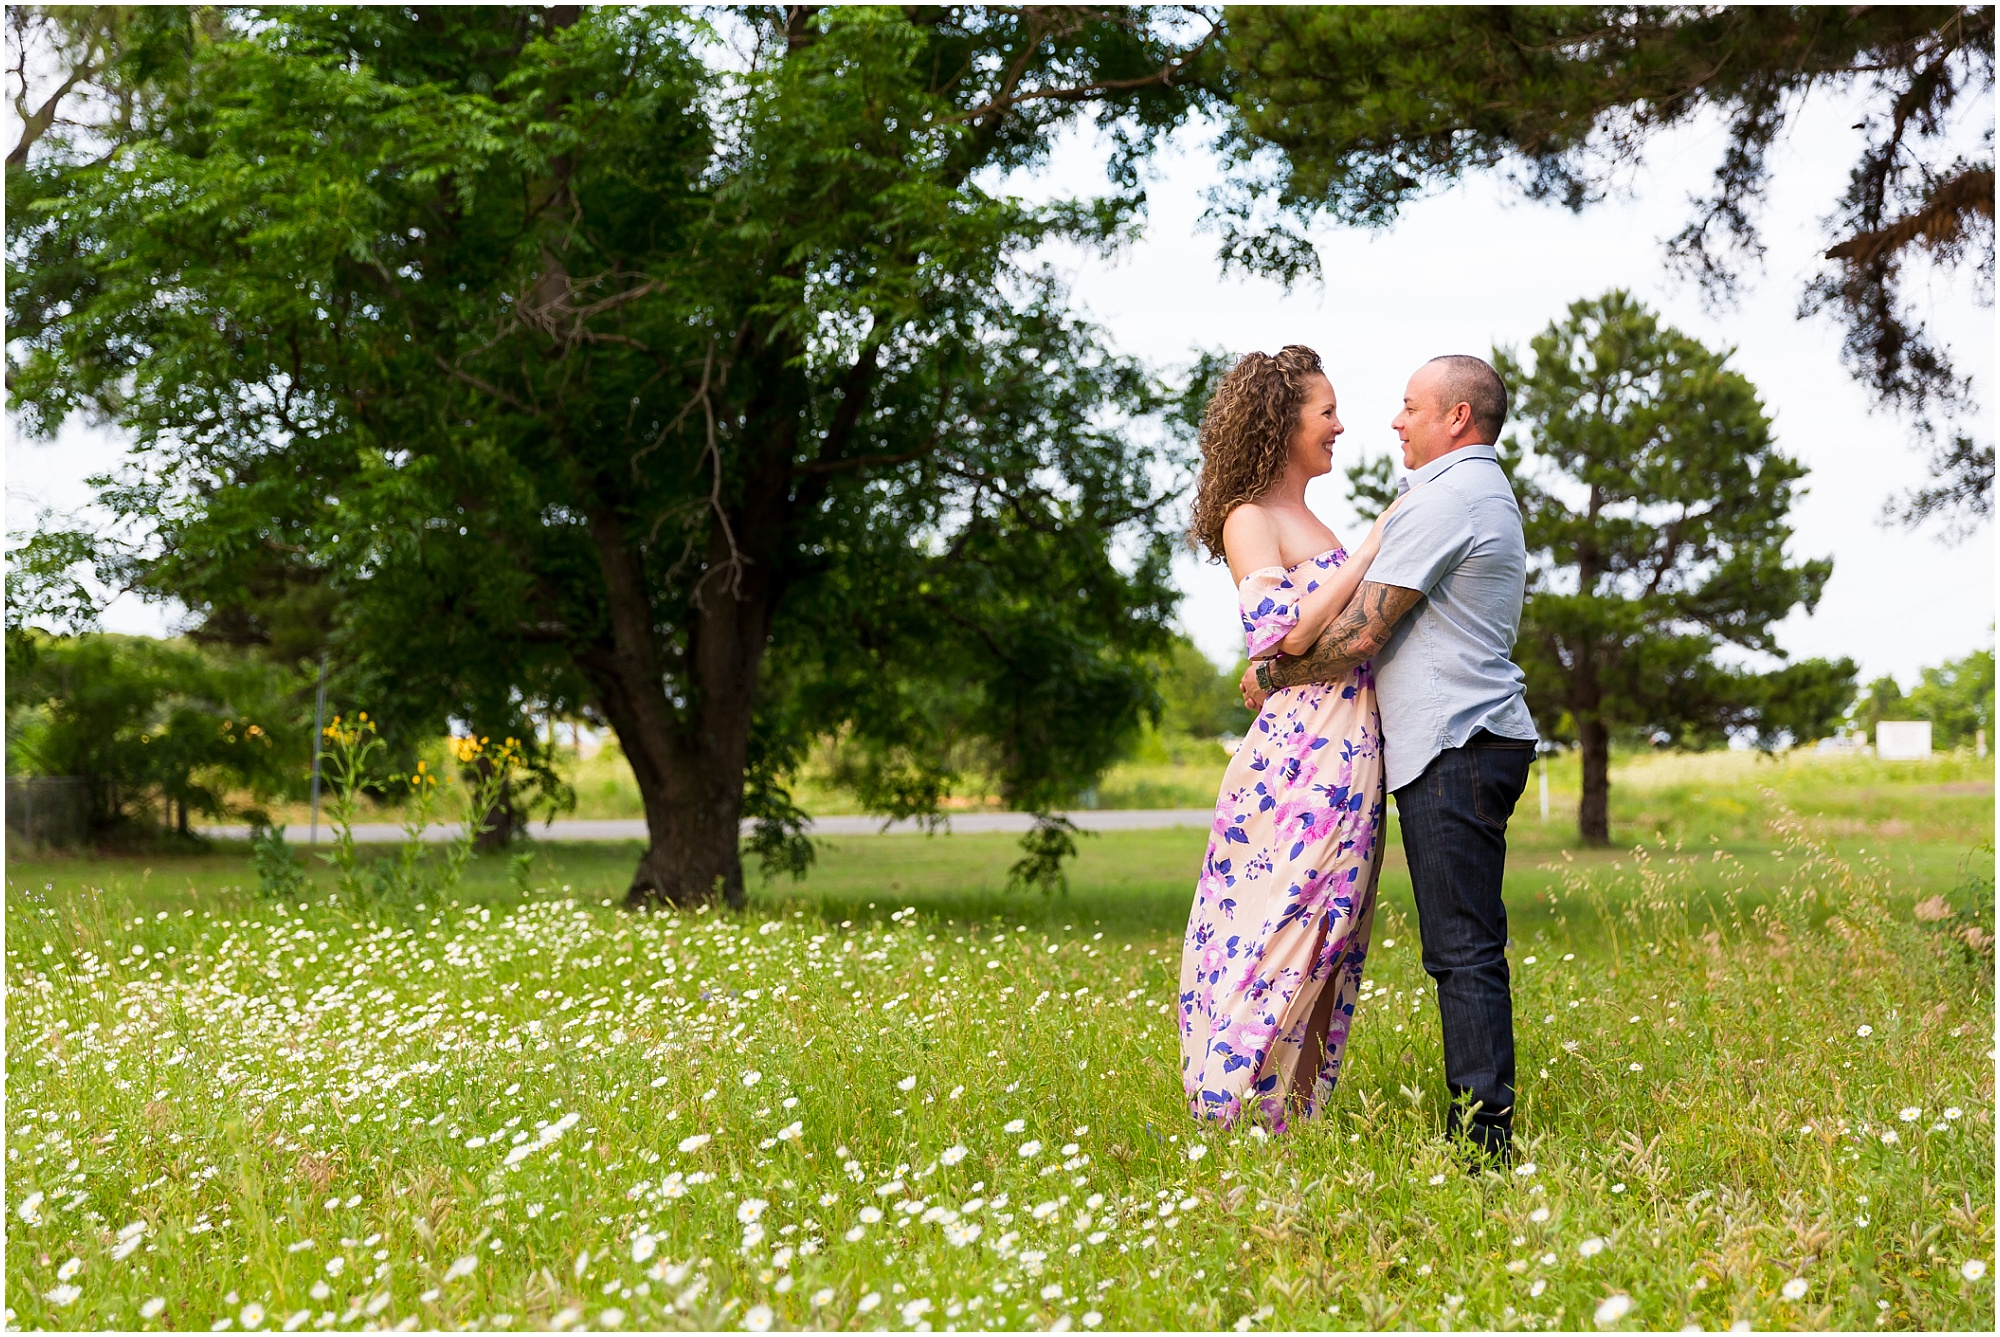 A couple faces one another and holds one another in a field of little white flowers during their engagement session at Glen Rose, Texas - Jason & Melaina Photography - www.jasonandmelaina.com